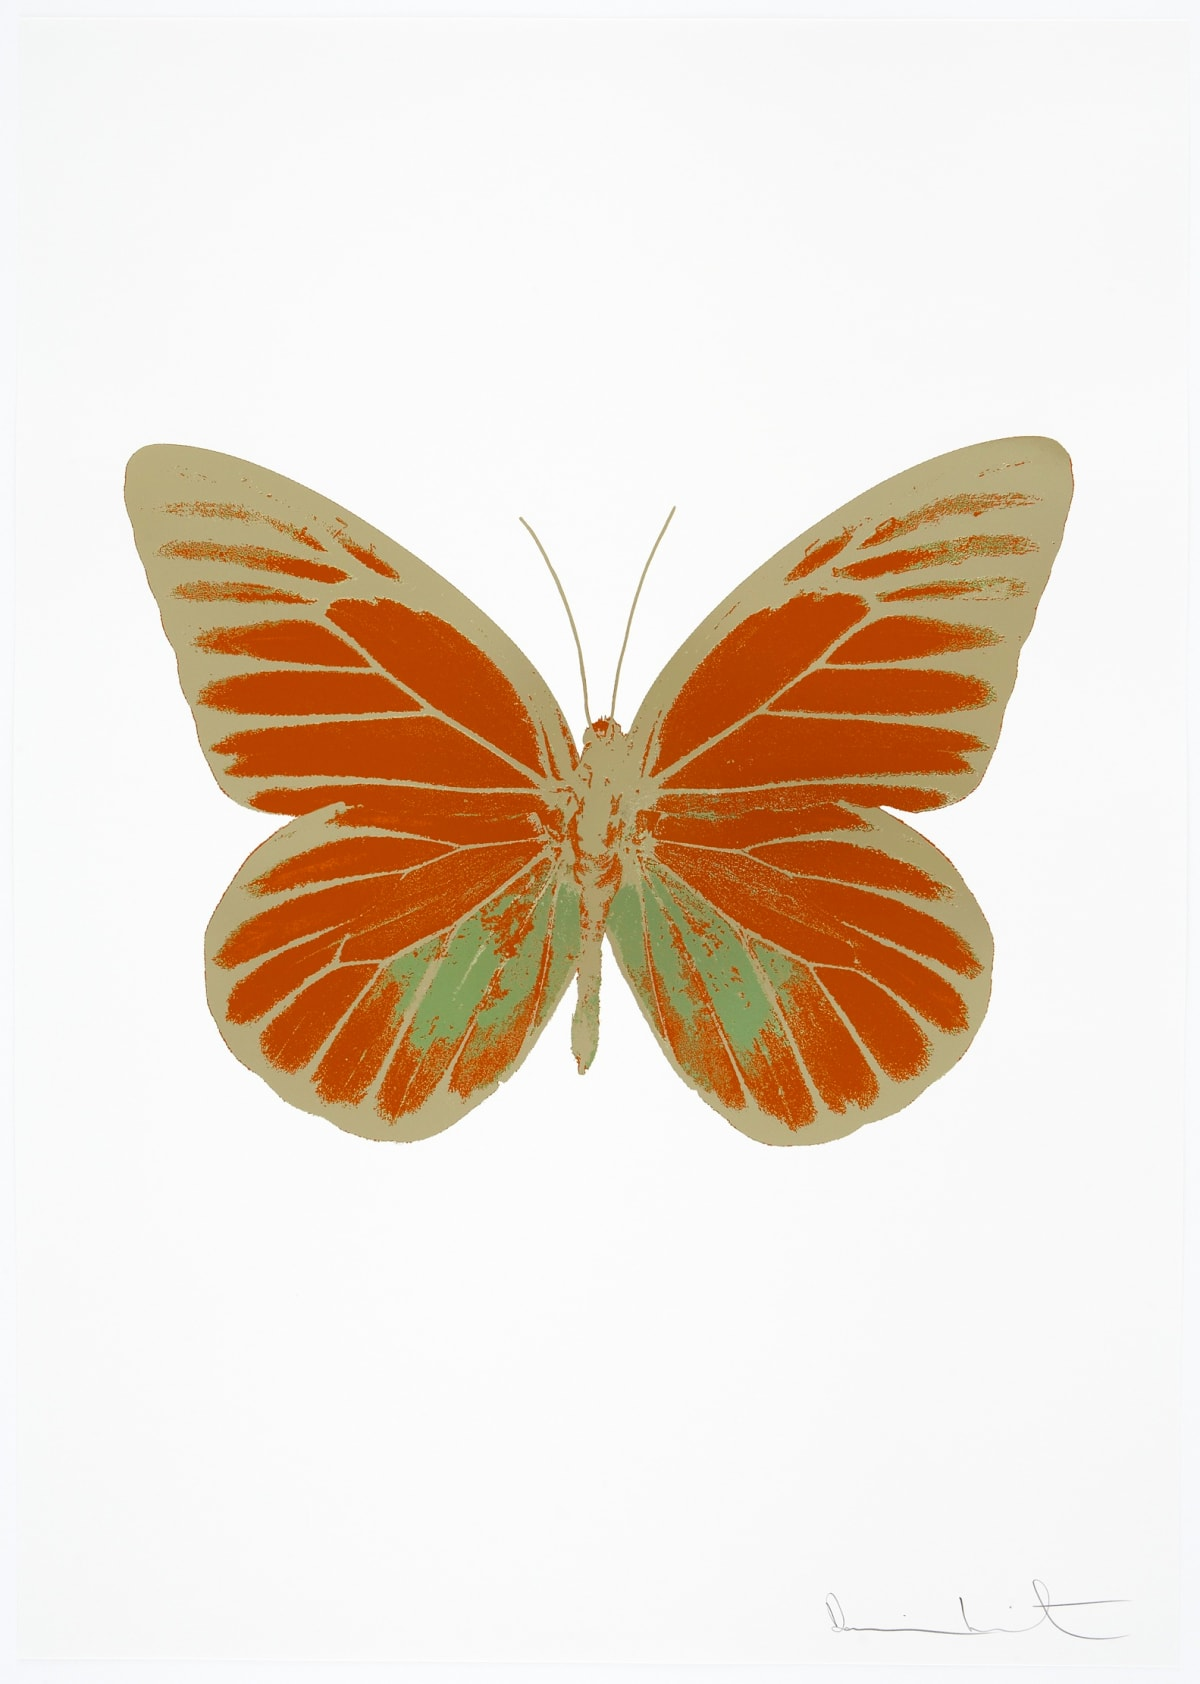 Damien Hirst The Souls I - Prairie Copper/Leaf Green/Cool Gold, 2010 3 colour foil block on 300gsm Arches 88 archival paper. Signed and numbered. Published by Paul Stolper and Other Criteria 72 x 51cm OC7759 / 659-22 Edition of 15